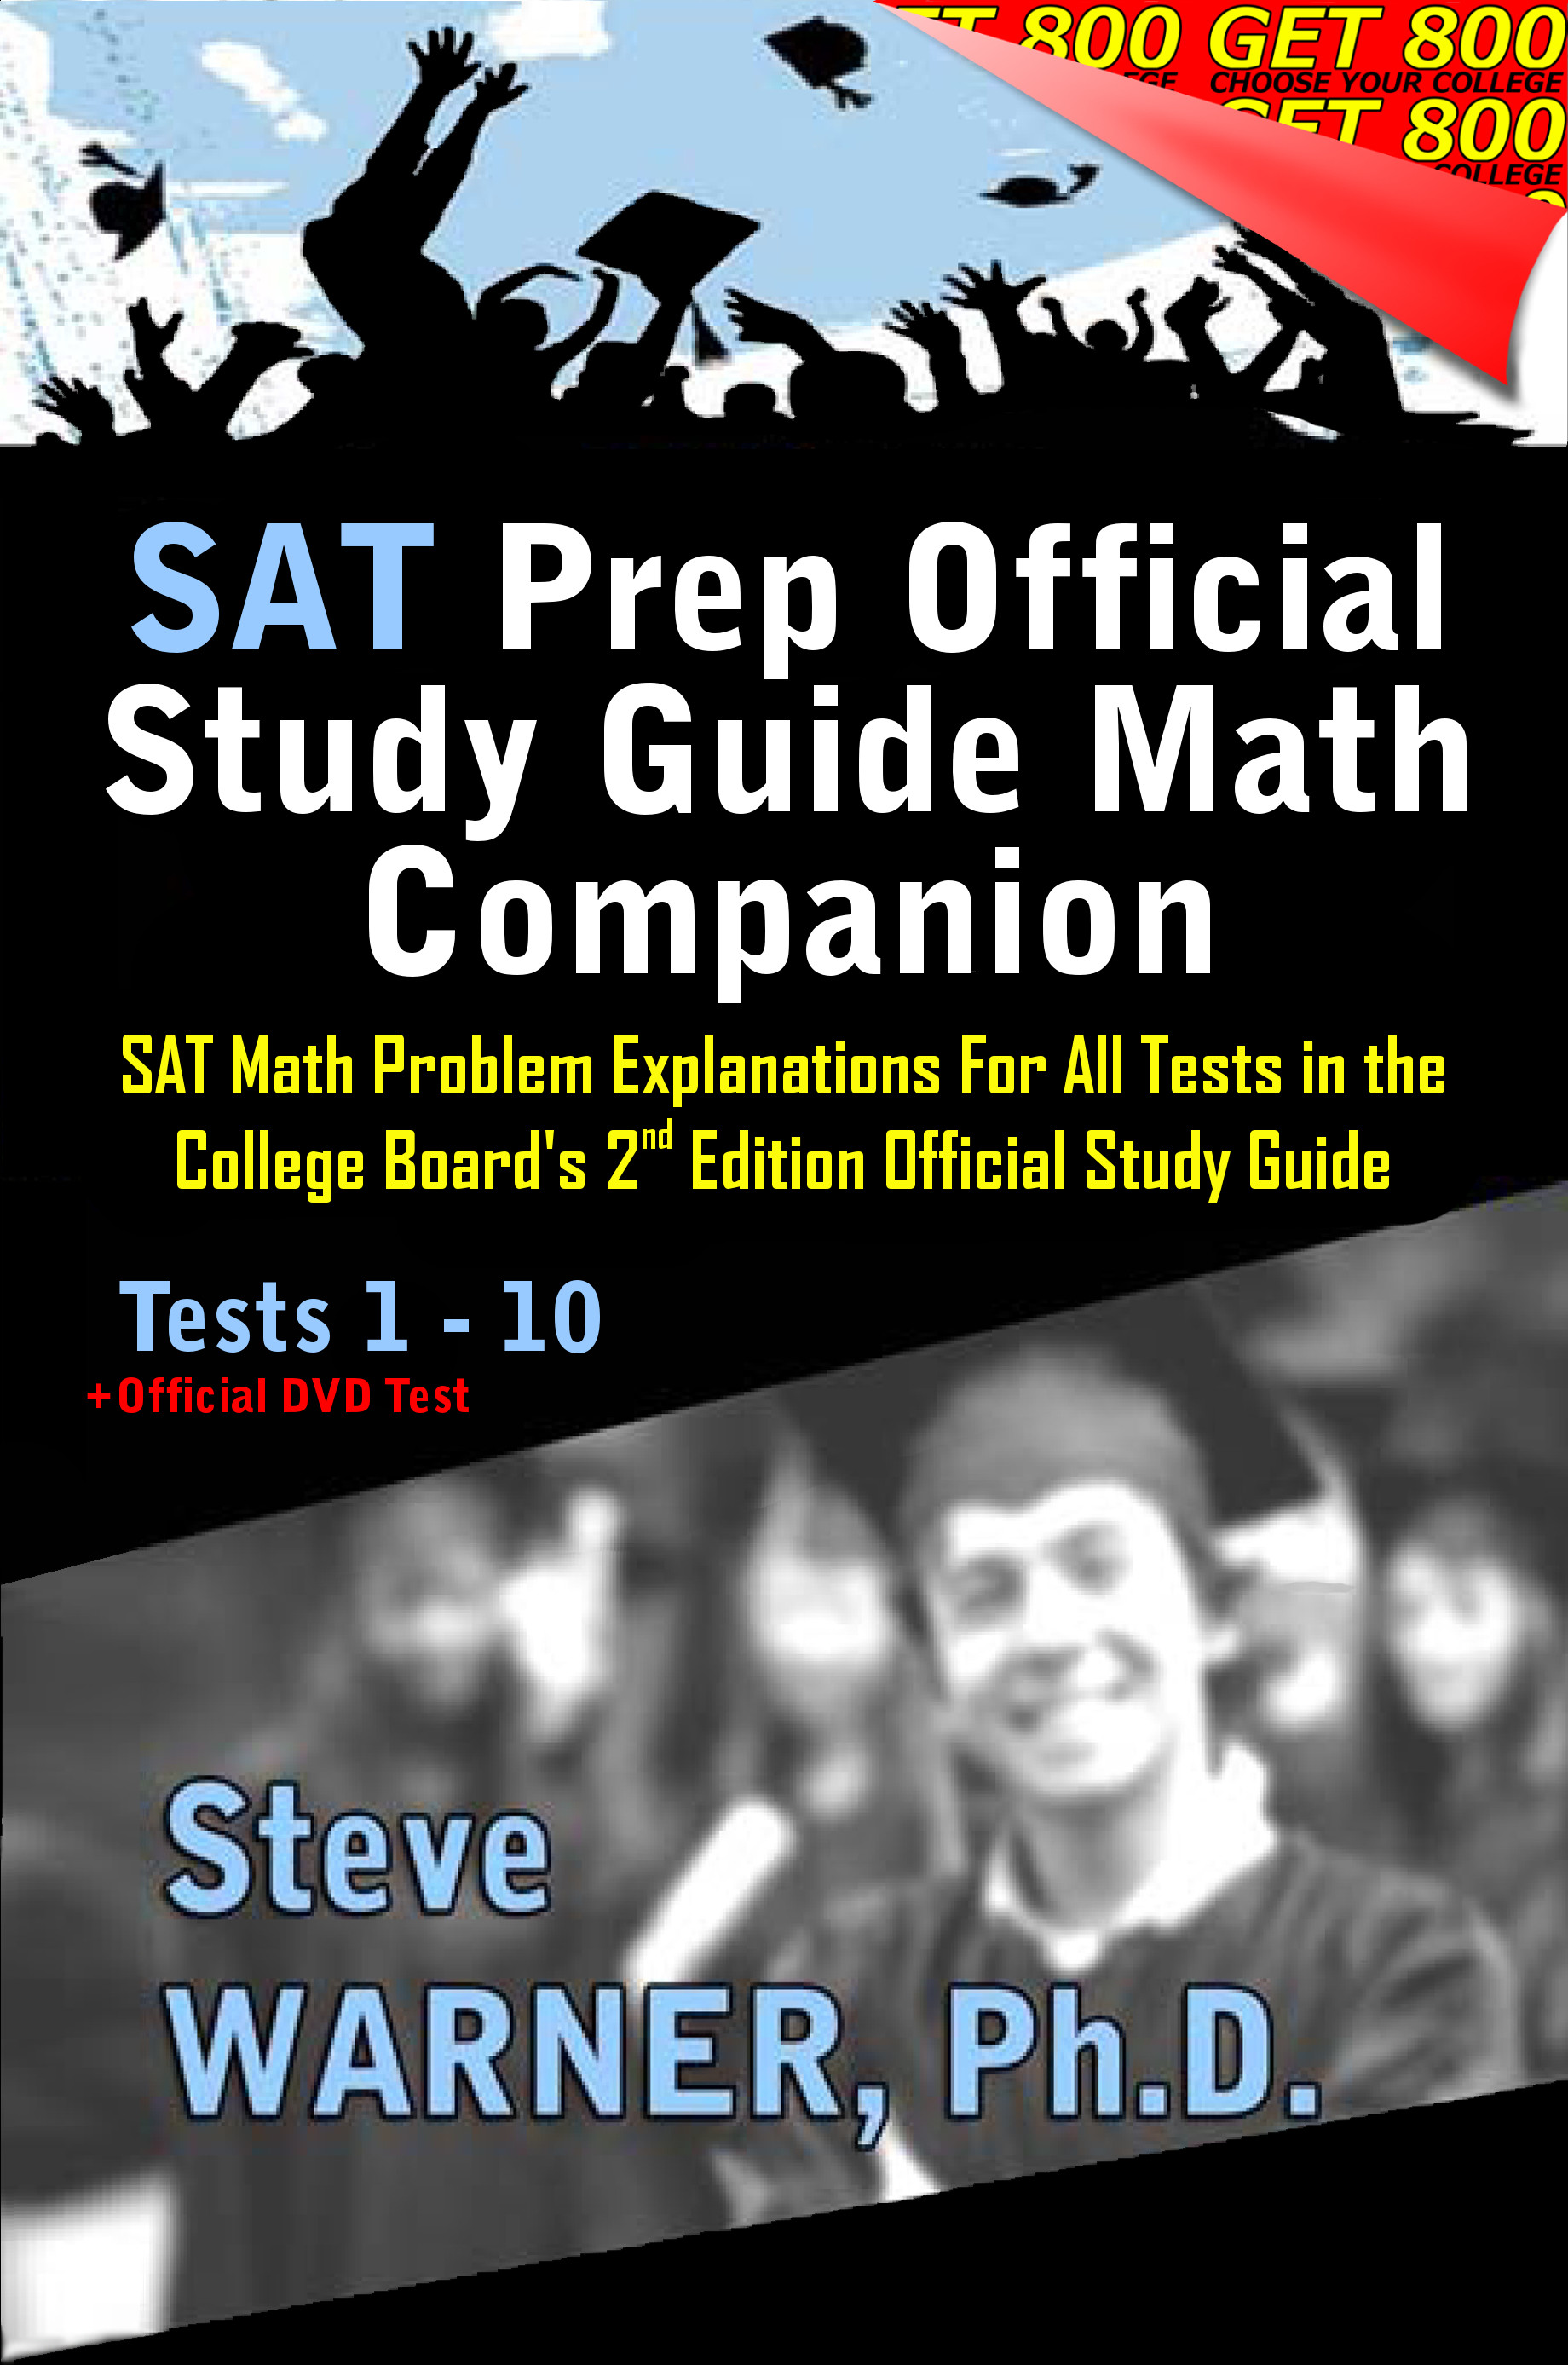 The Official SAT Study Guide Companions